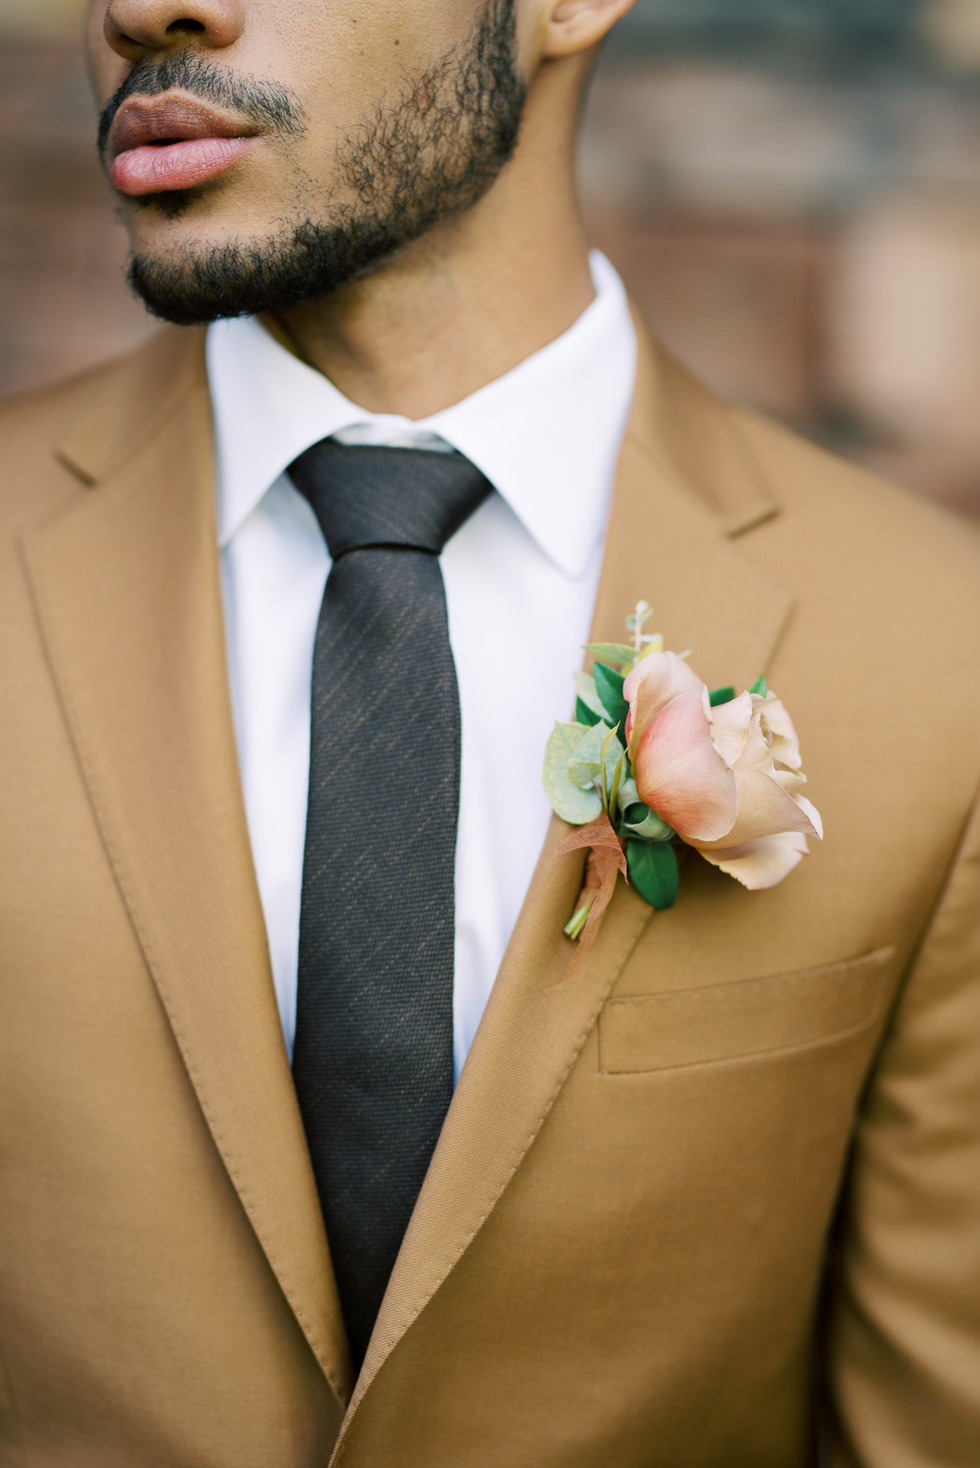 Honey-colored rose boutonniere. Photo: Kristen Kay